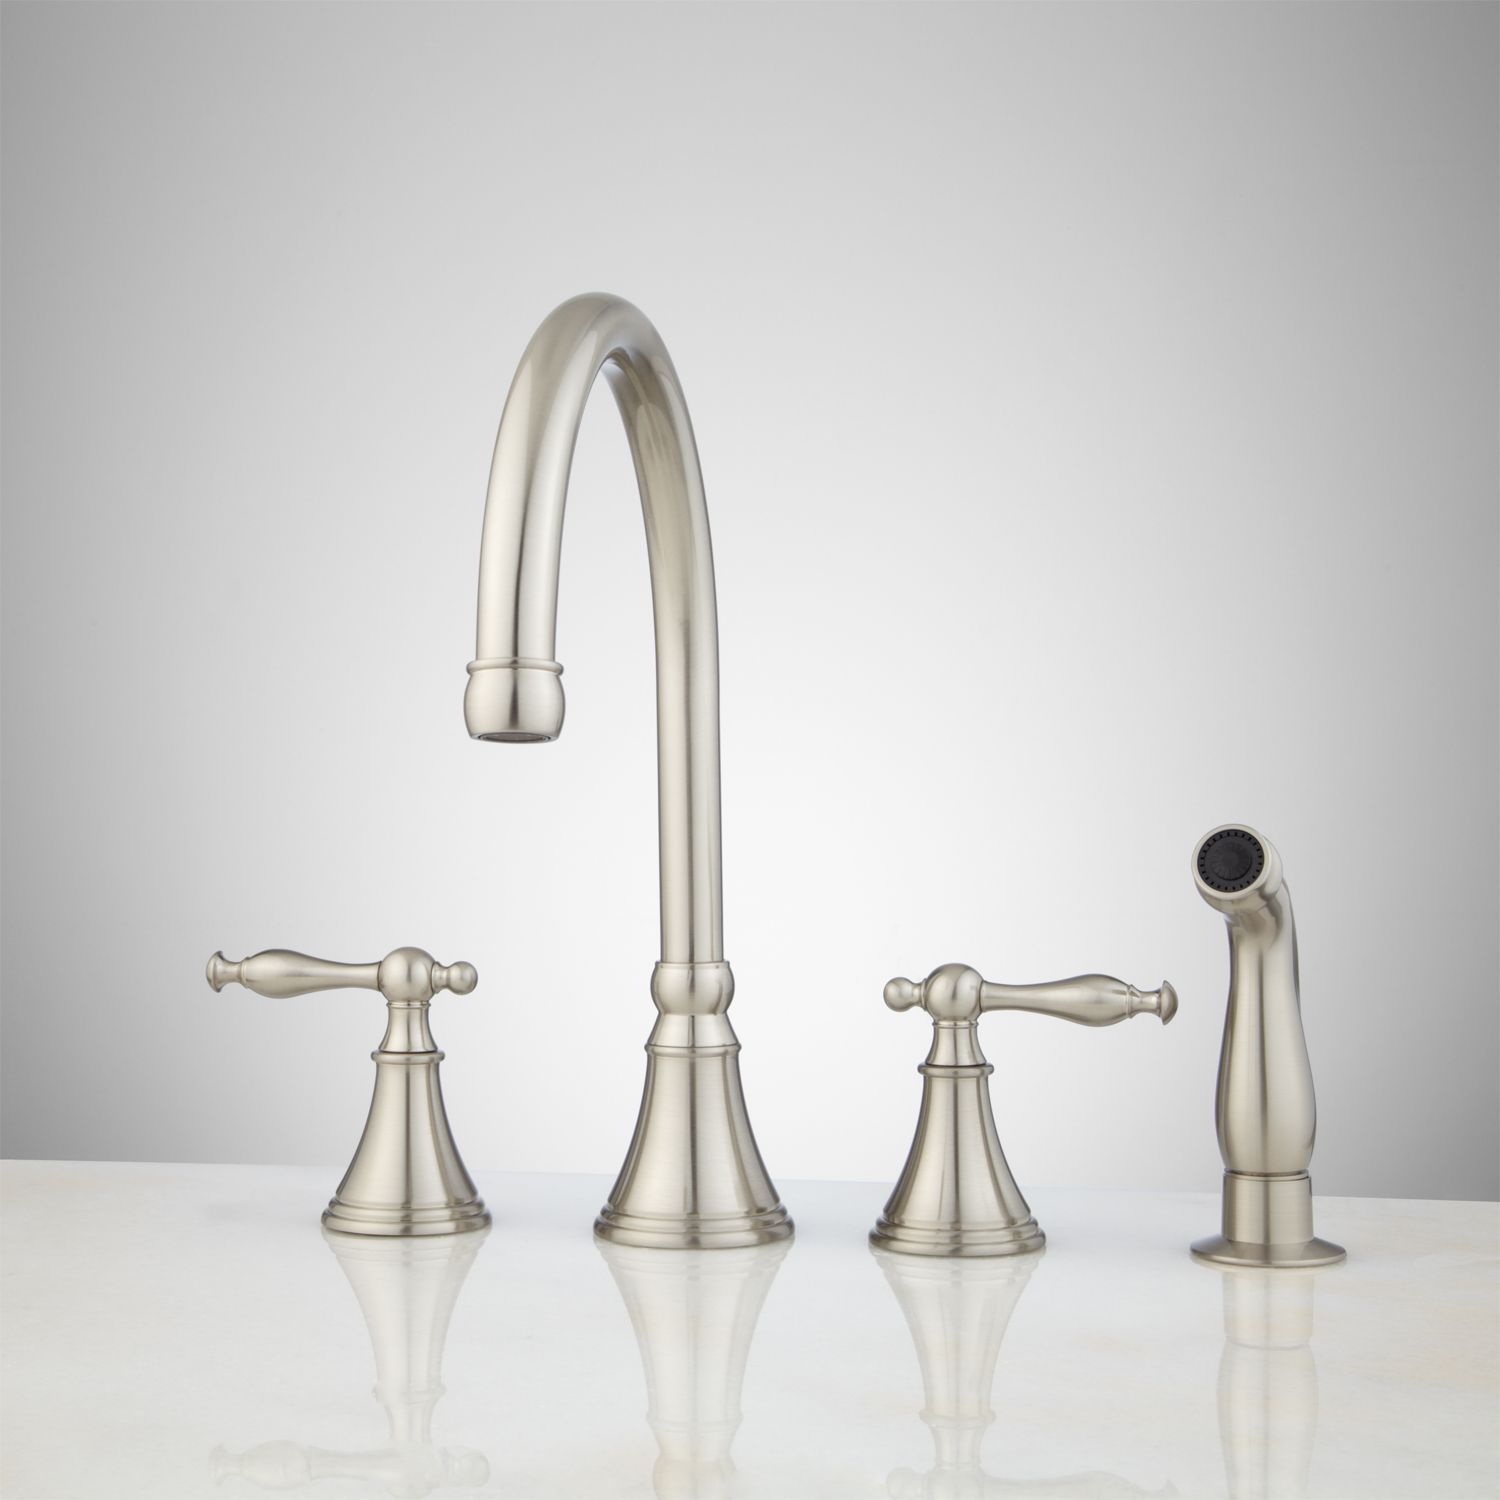 Radley Widespread Kitchen Faucet with Hand Spray - Brushed Nickel ...